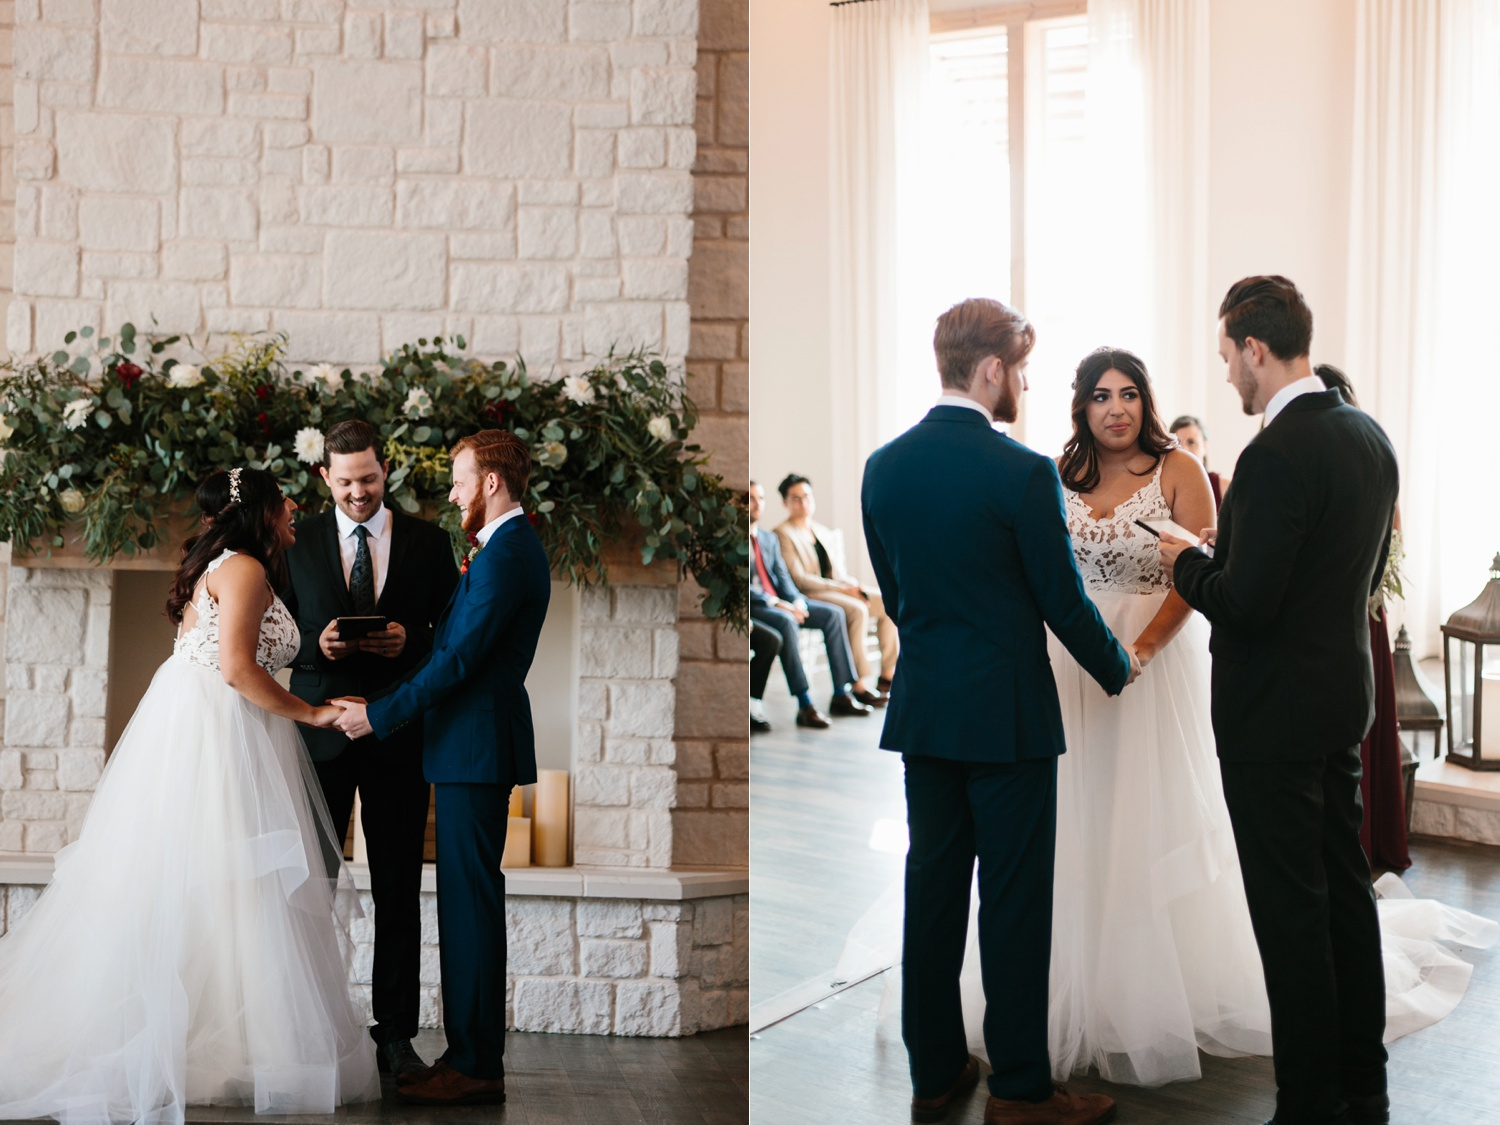 Grant + Lysette | a vibrant, deep burgundy and navy, and mixed metals wedding at Hidden Pines Chapel by North Texas Wedding Photographer Rachel Meagan Photography 102